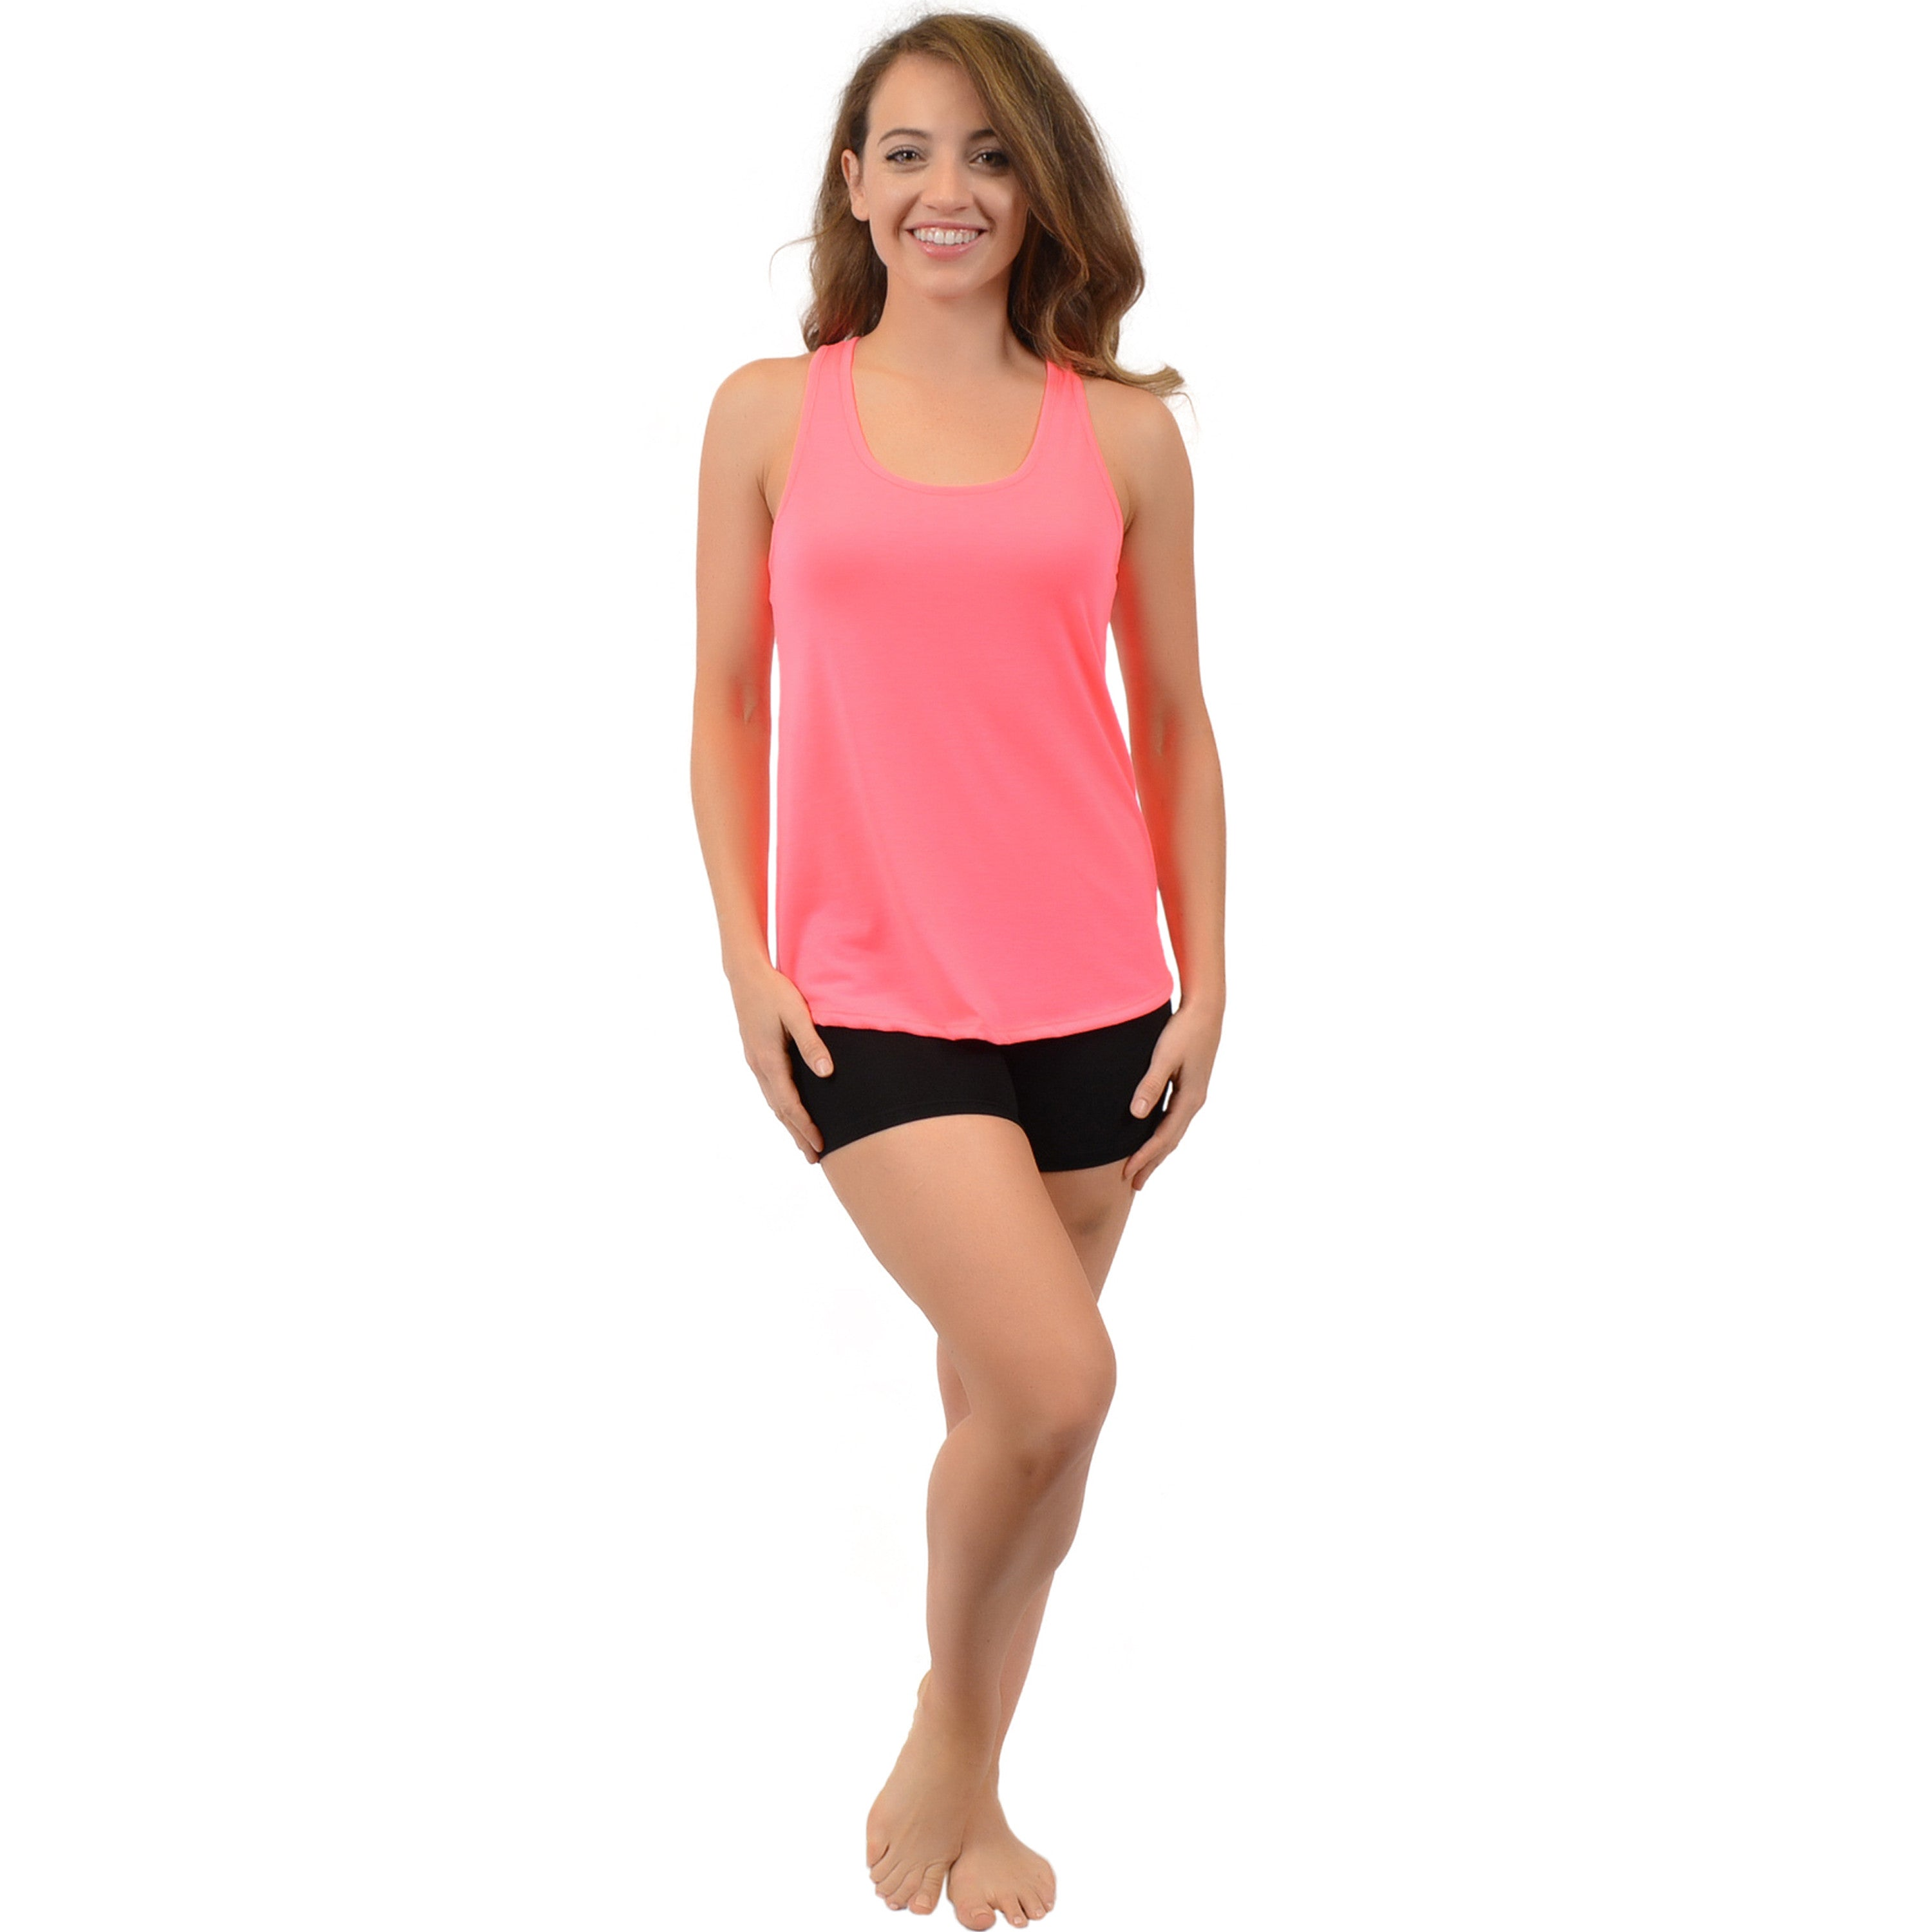 Women's Relaxed Fit Tank Top